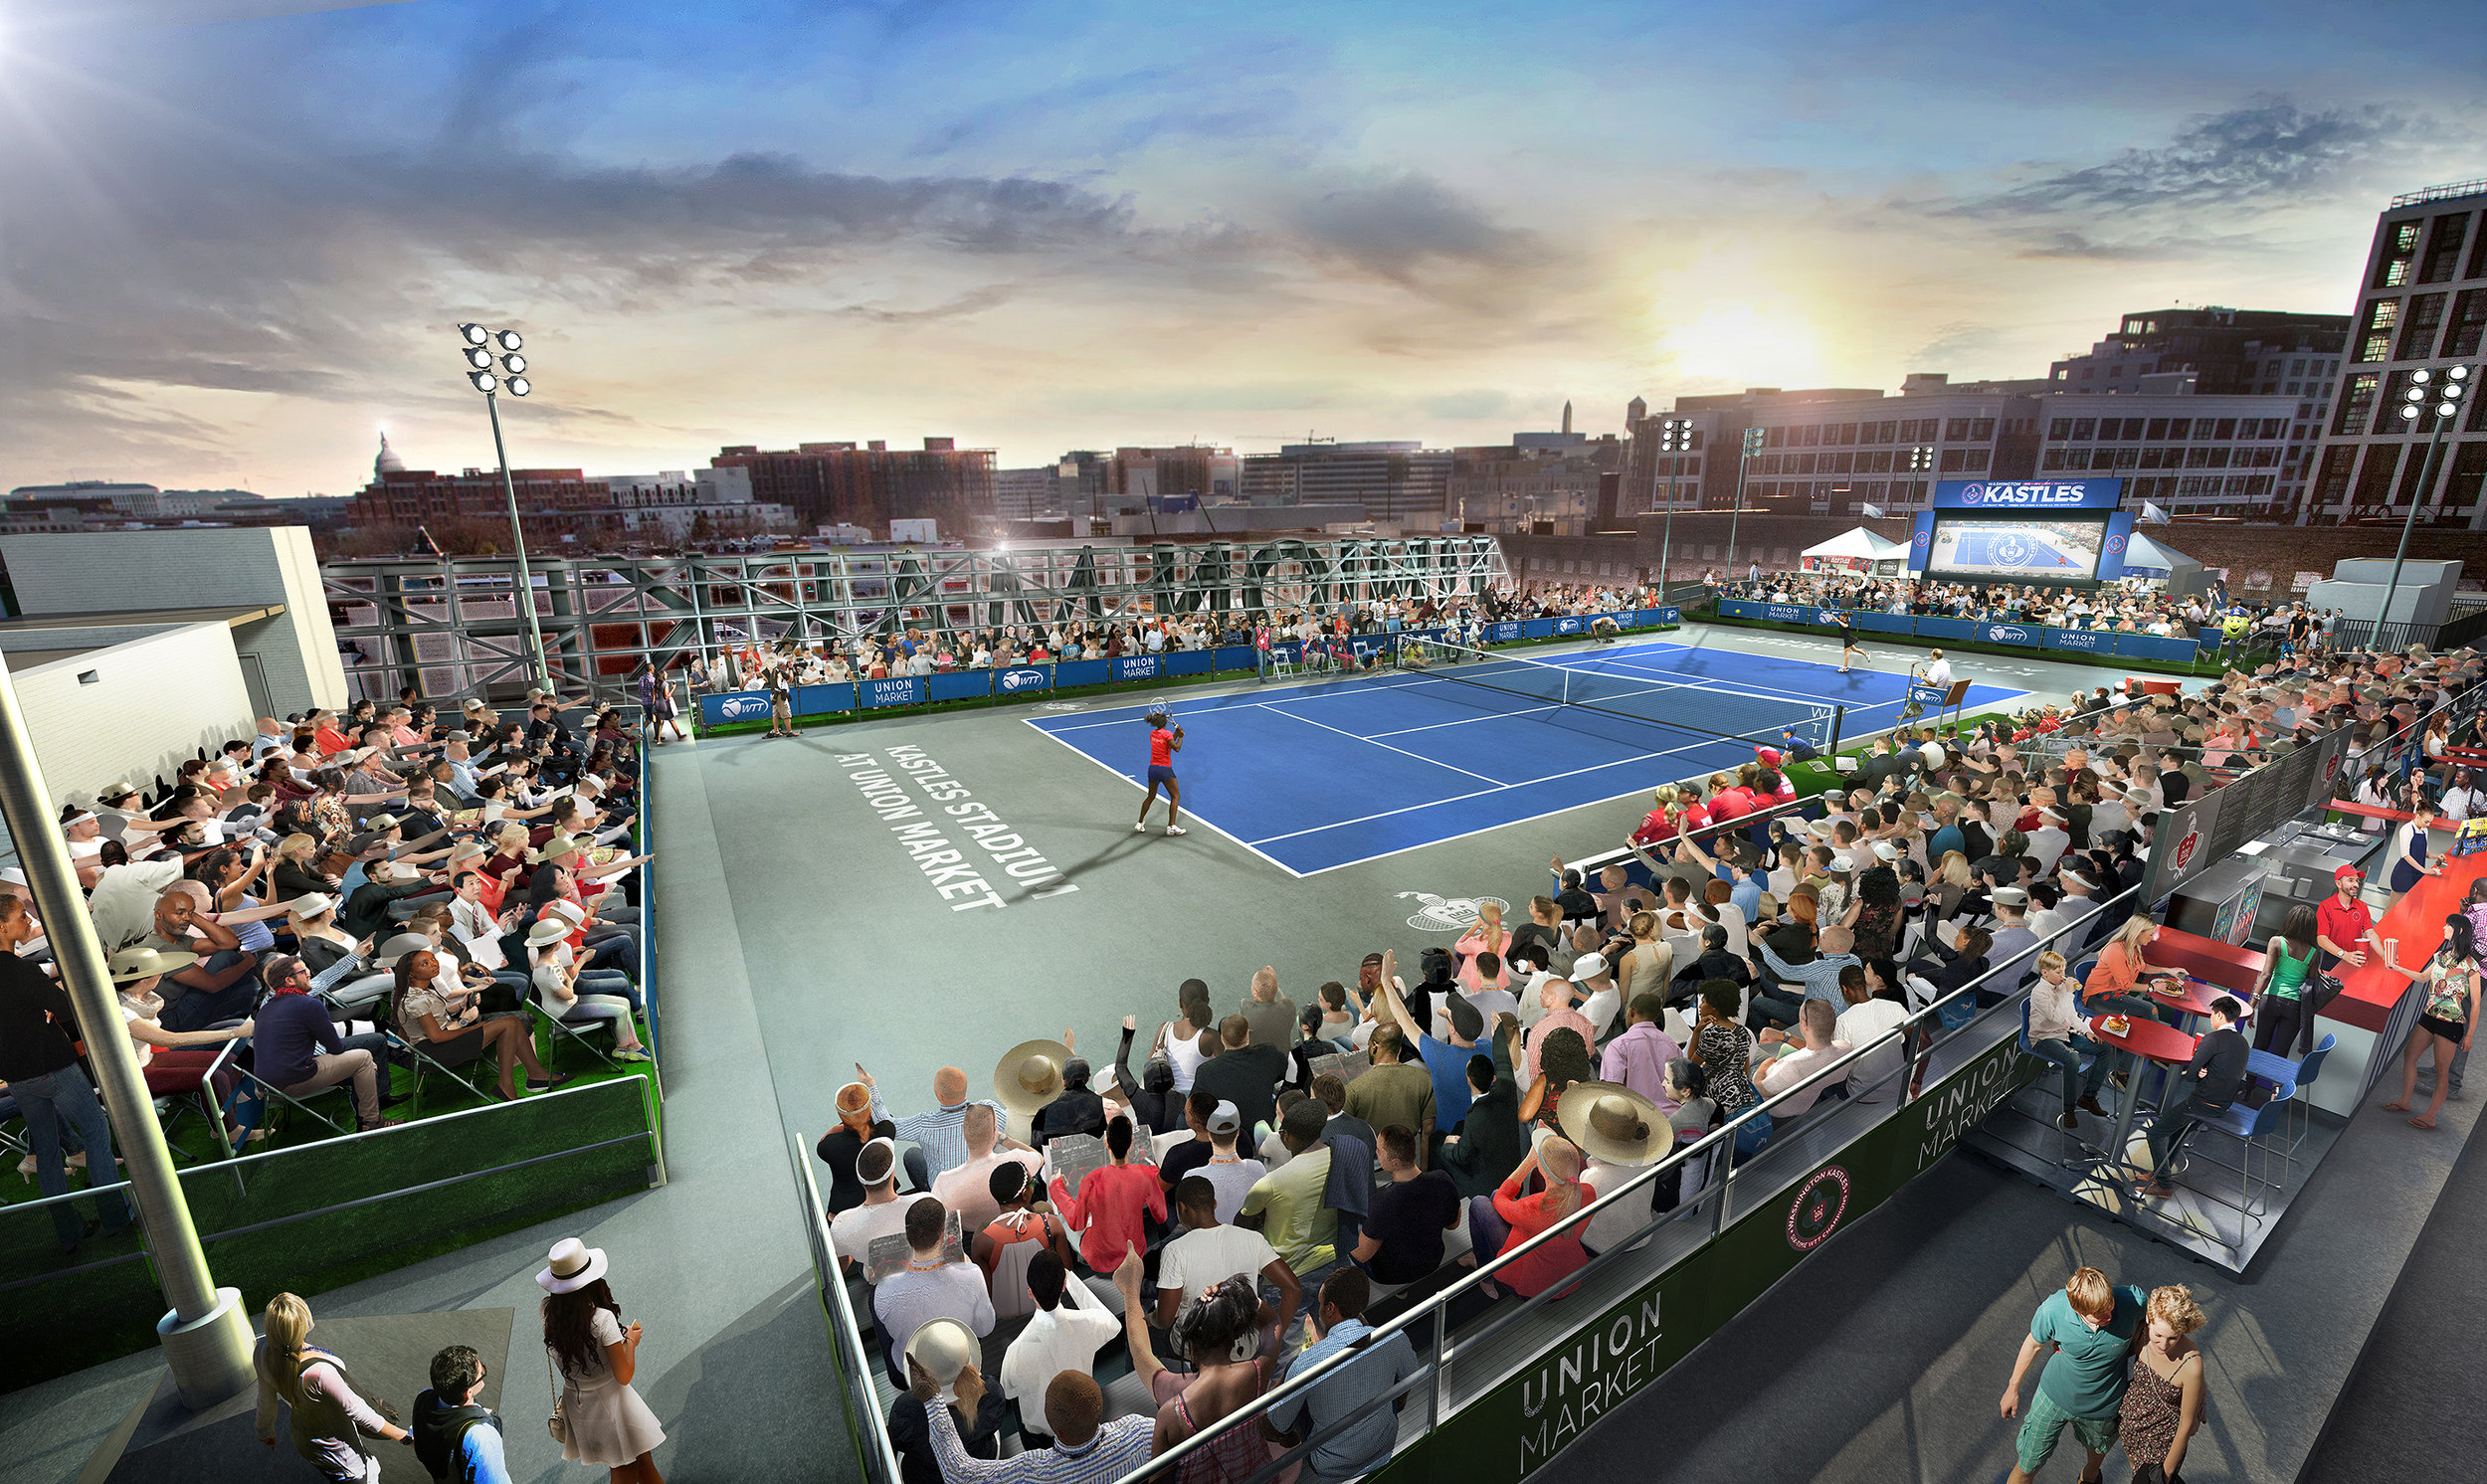 Final view of Kastles' popup court on the roof of Union Market